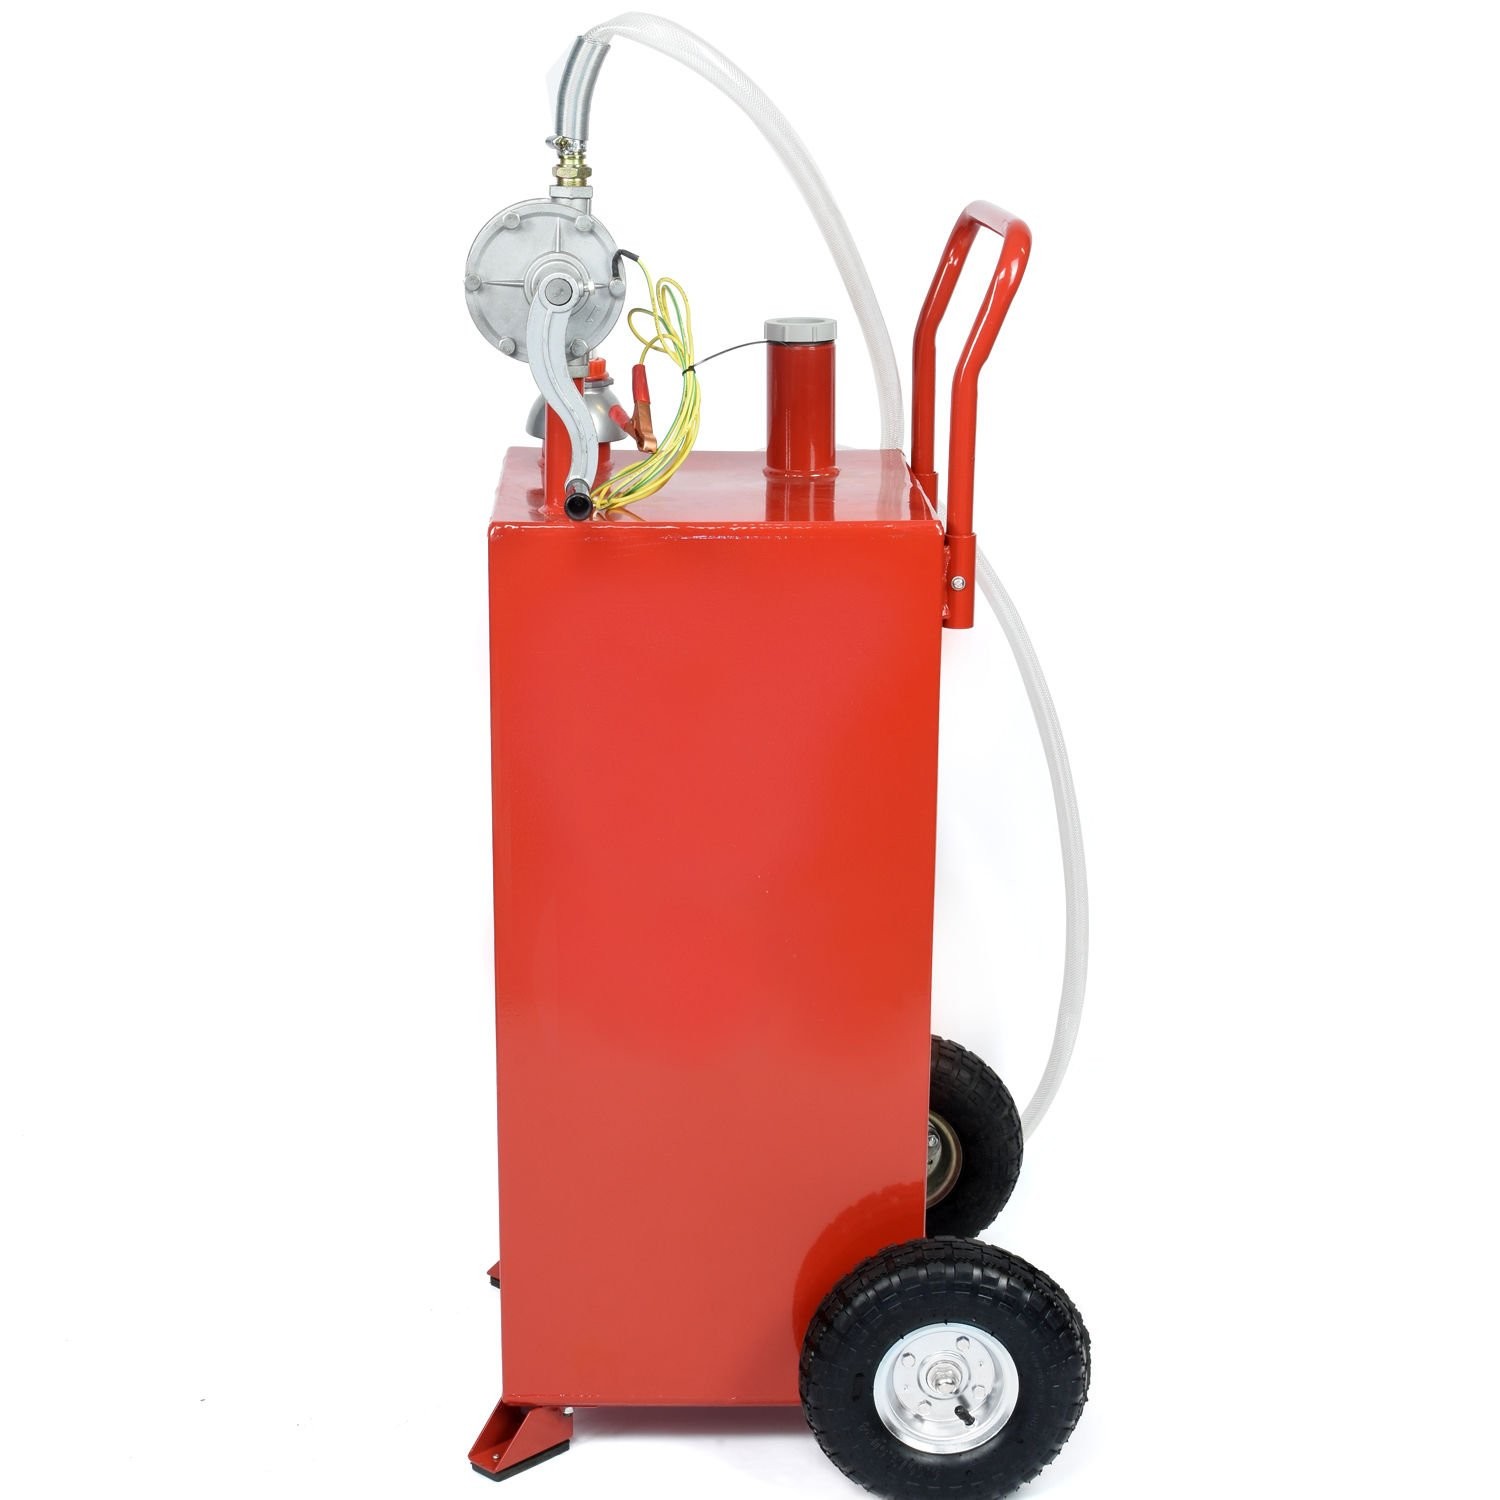 30 Gallon Gas Fuel Diesel Caddy Transfer Tank Container w/ Rotary Pump Tool by Wang Tong Shop (Image #2)